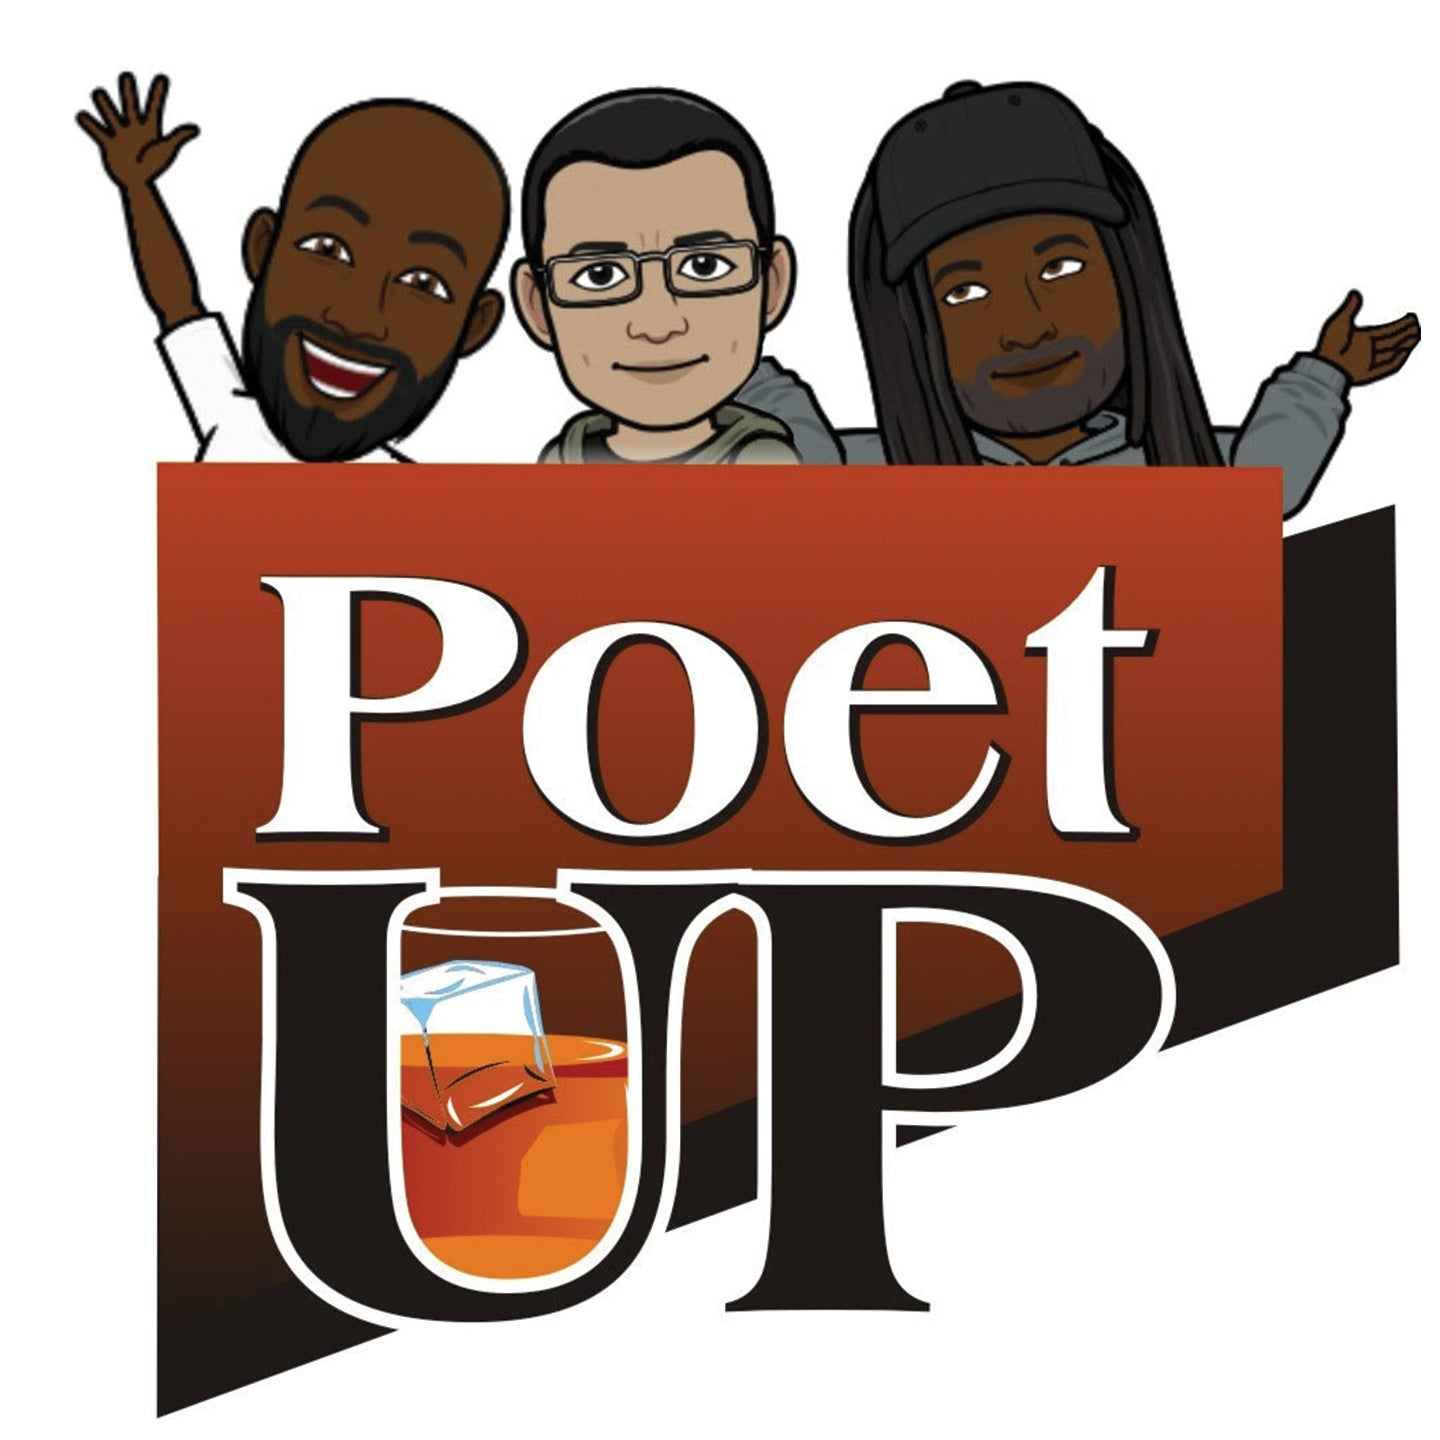 Poet Up Podcast Live!